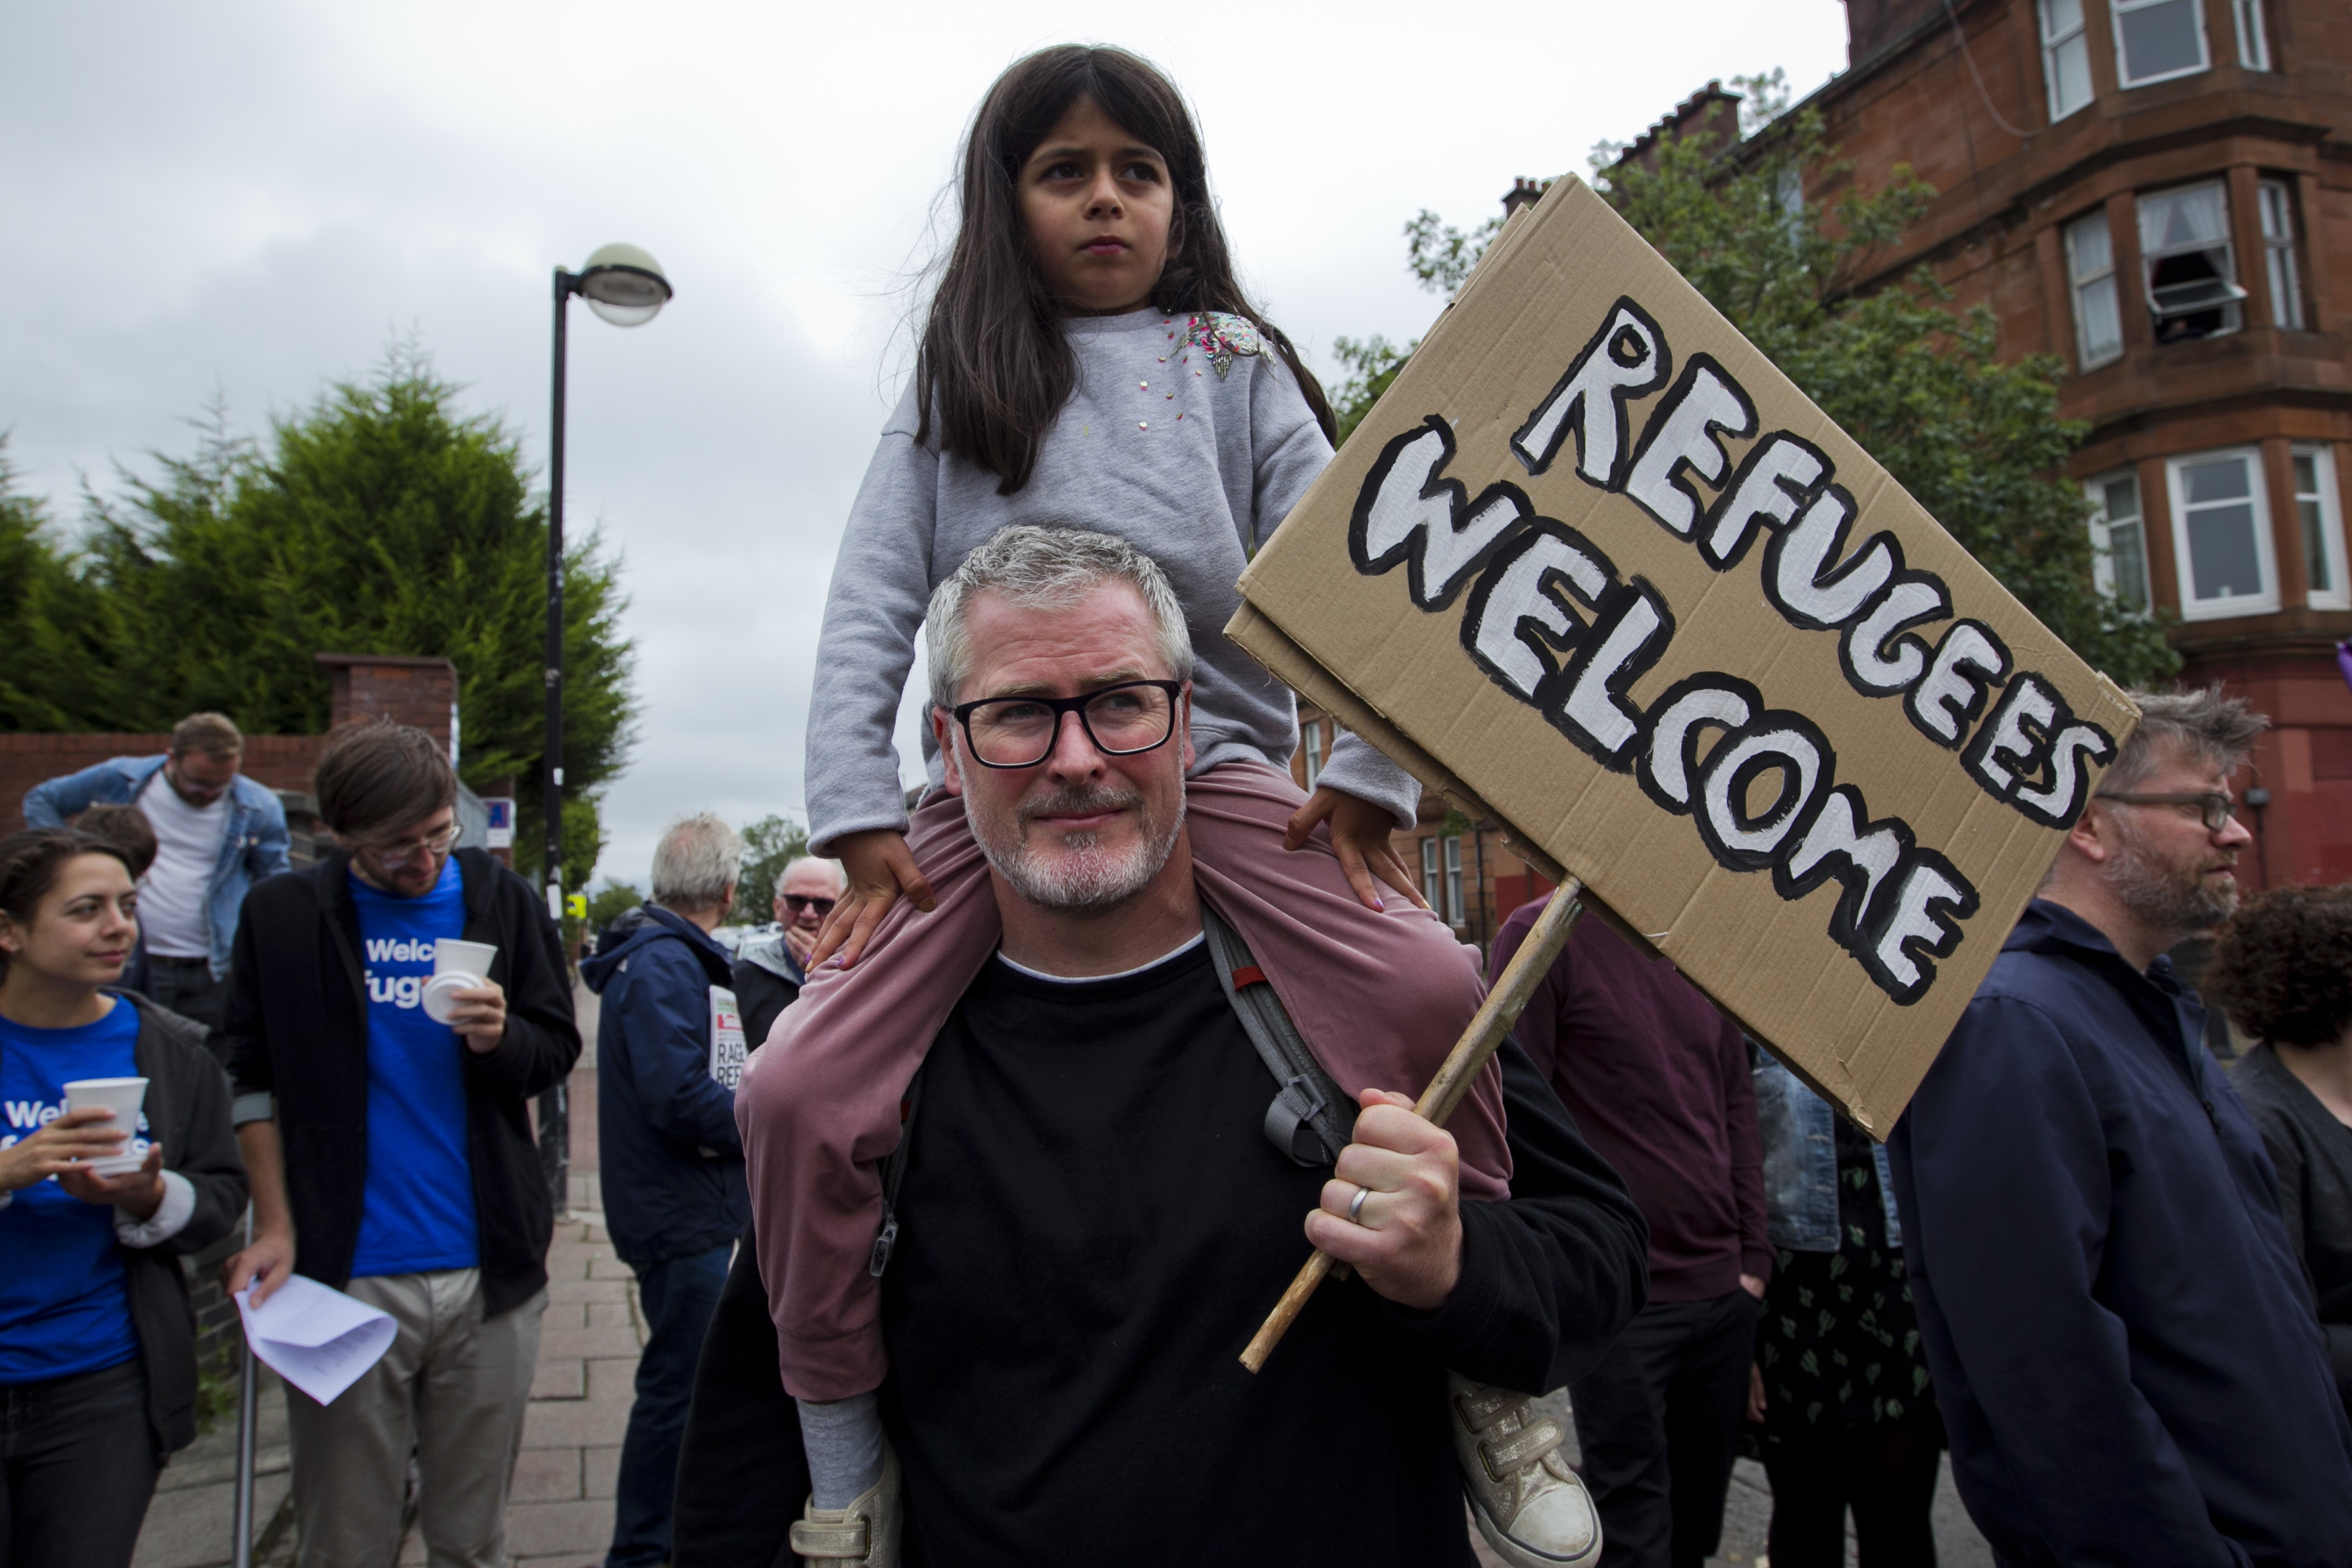 A demonstration outside the Home Office building in Glasgow (Andrew Cawley / DC Thomson)